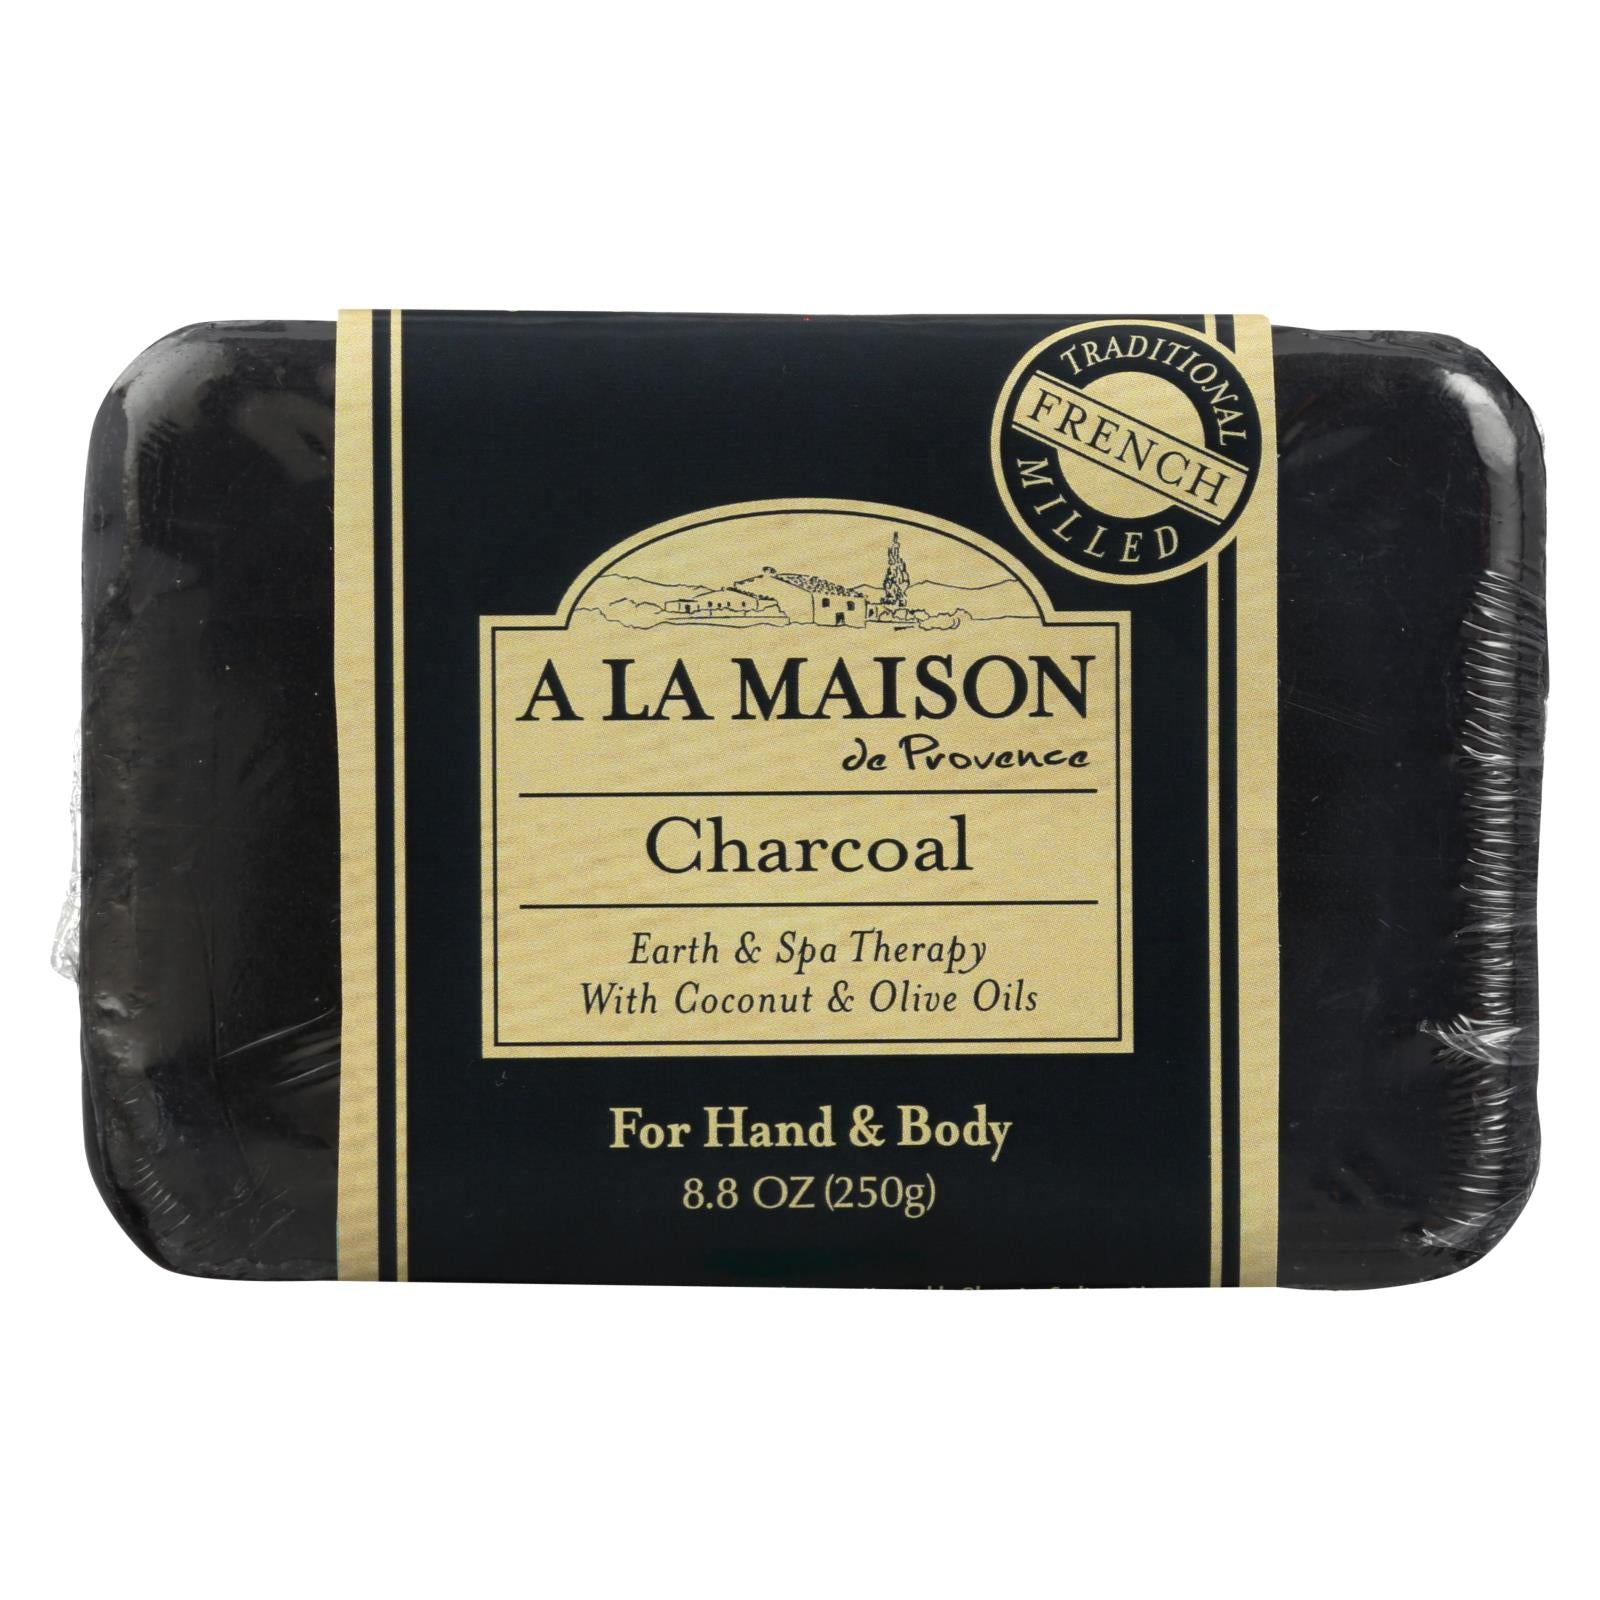 Buy A La Maison Bar Soap - Charcoal - 8.8 Oz - Bar Soap from Veroeco.com